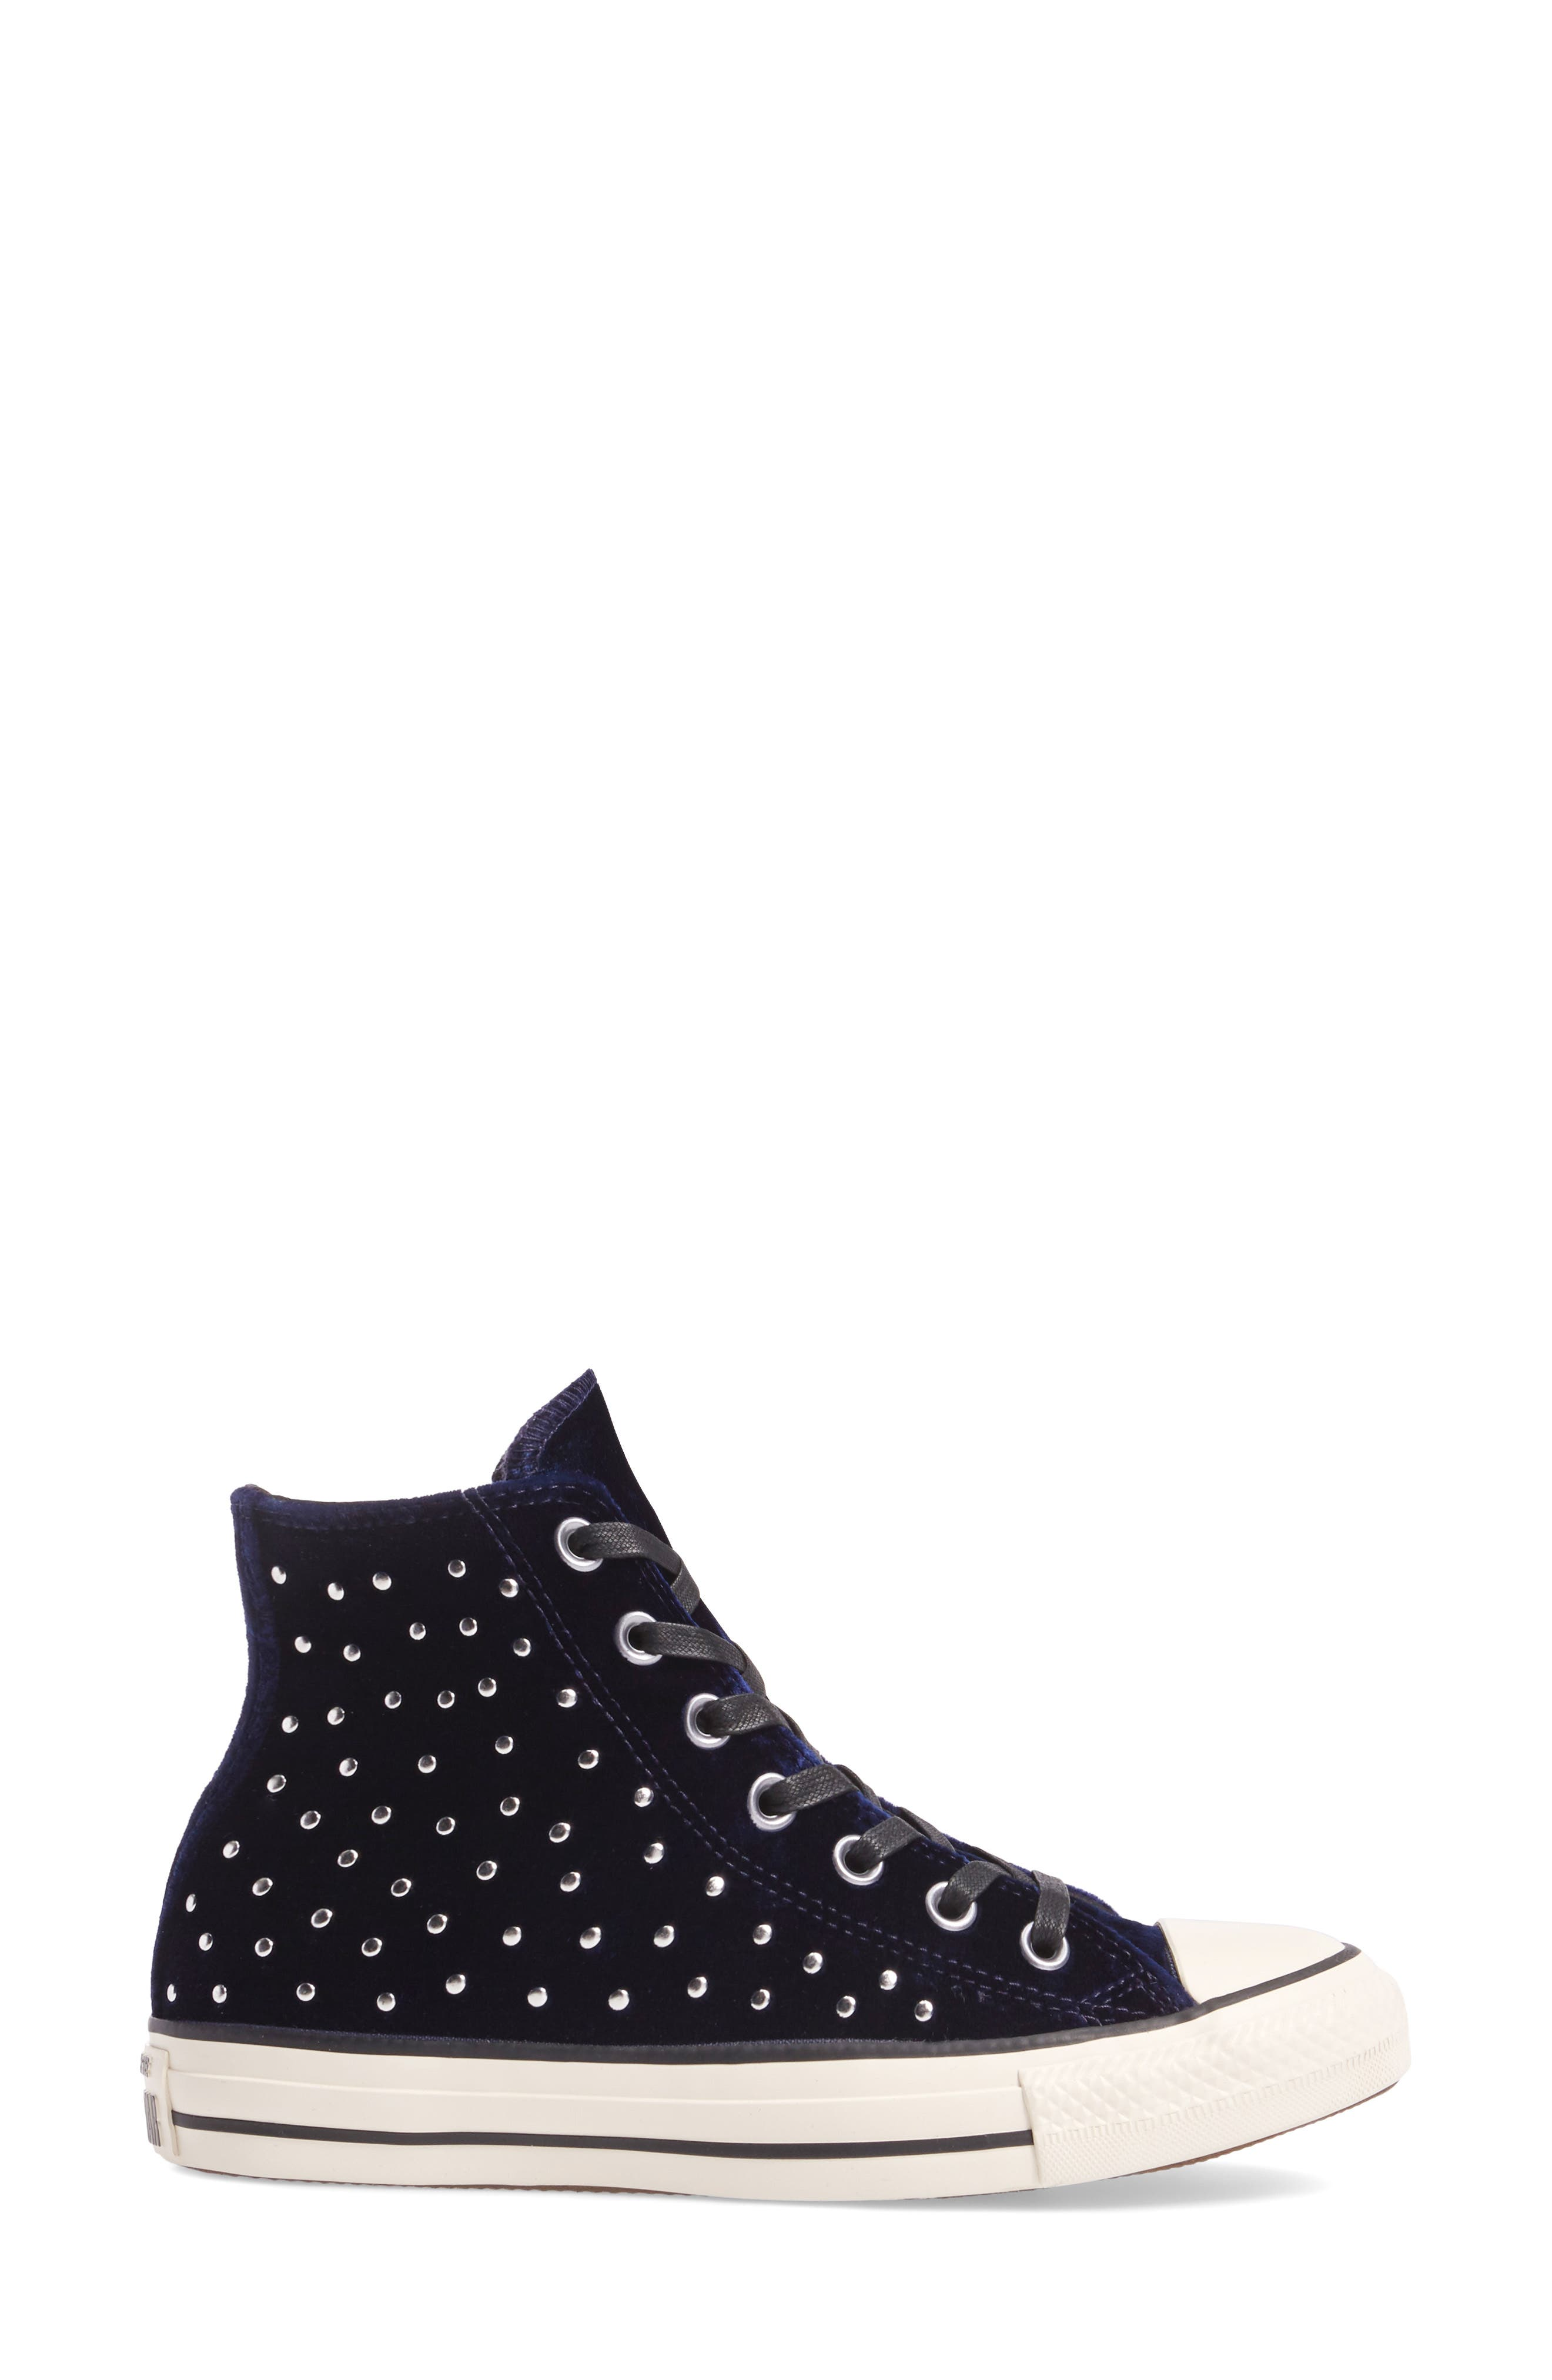 Chuck Taylor<sup>®</sup> All Star<sup>®</sup> Studded High Top Sneakers,                             Alternate thumbnail 8, color,